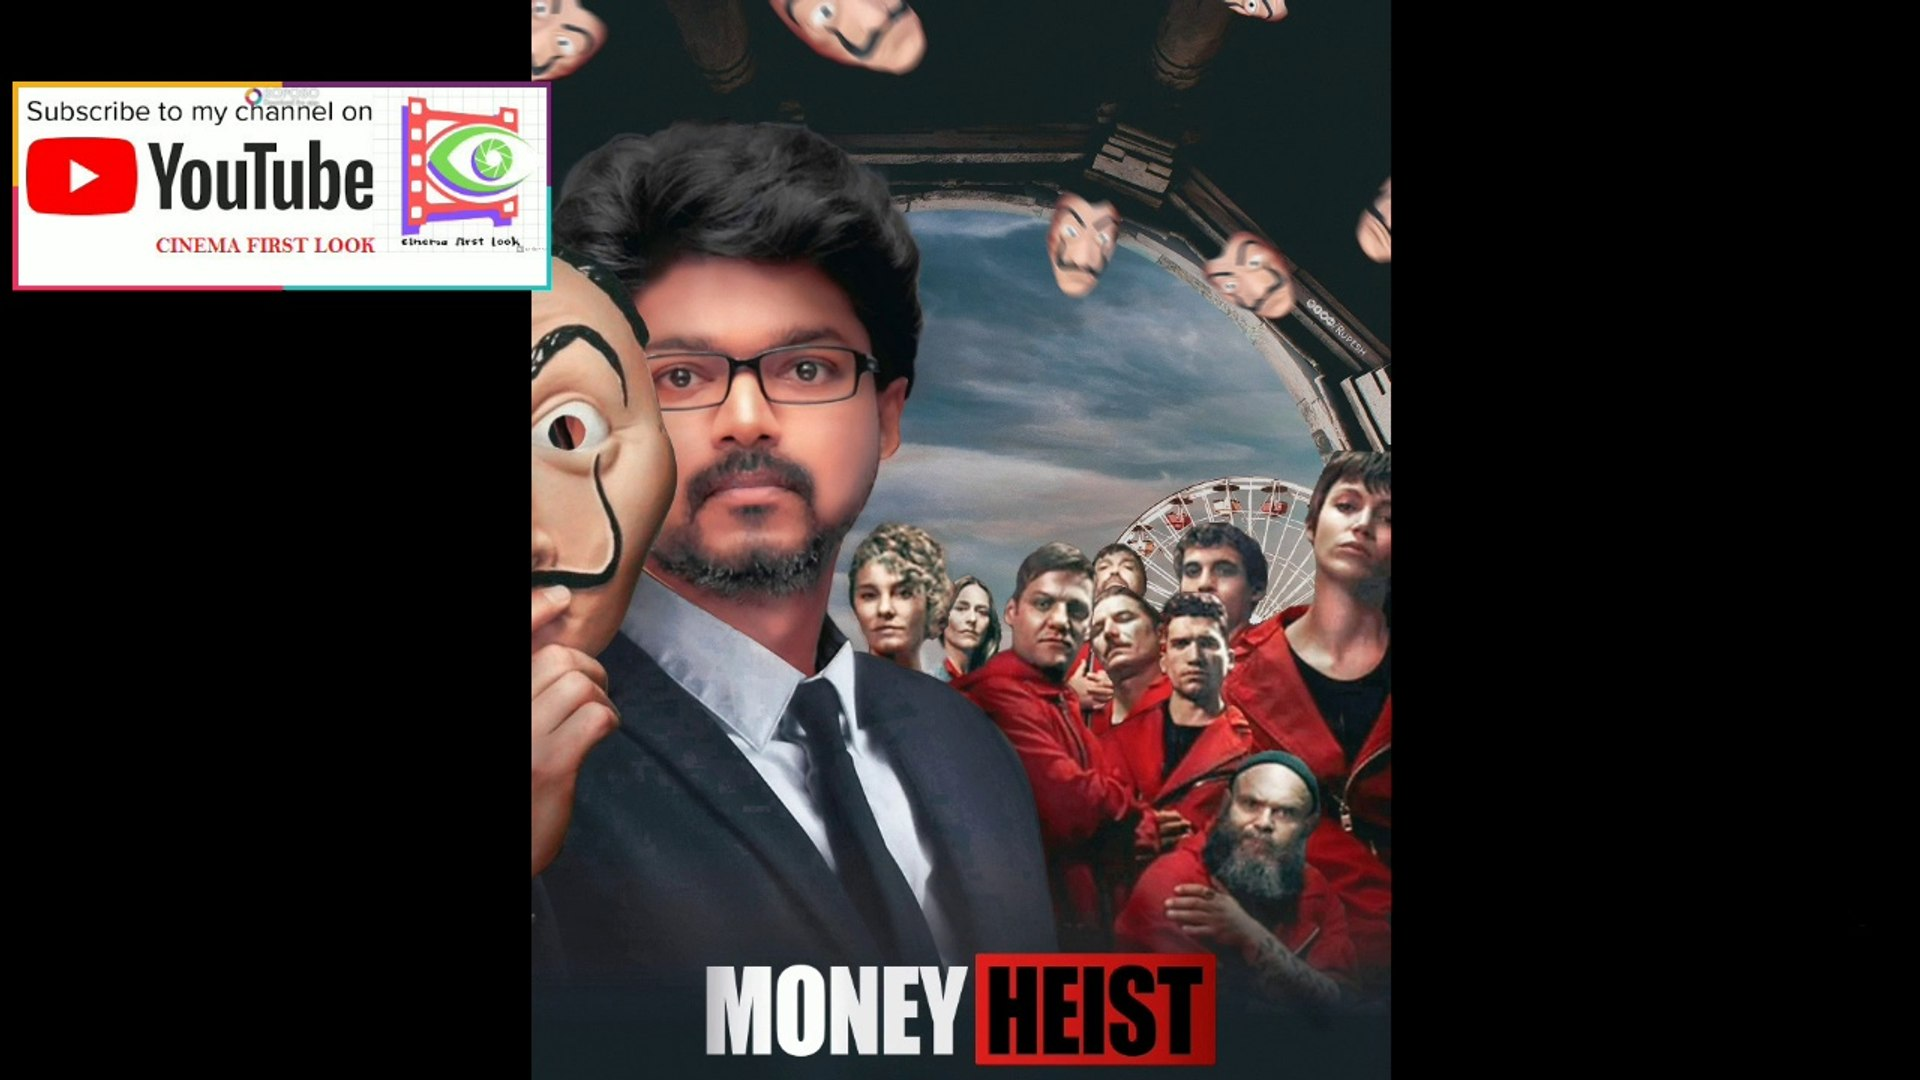 விஜய் யின் Money Heist |Tamil trailer|#vijay#moneyheist #tamilvideo#Kollywood #cinemafirstlook_tamil